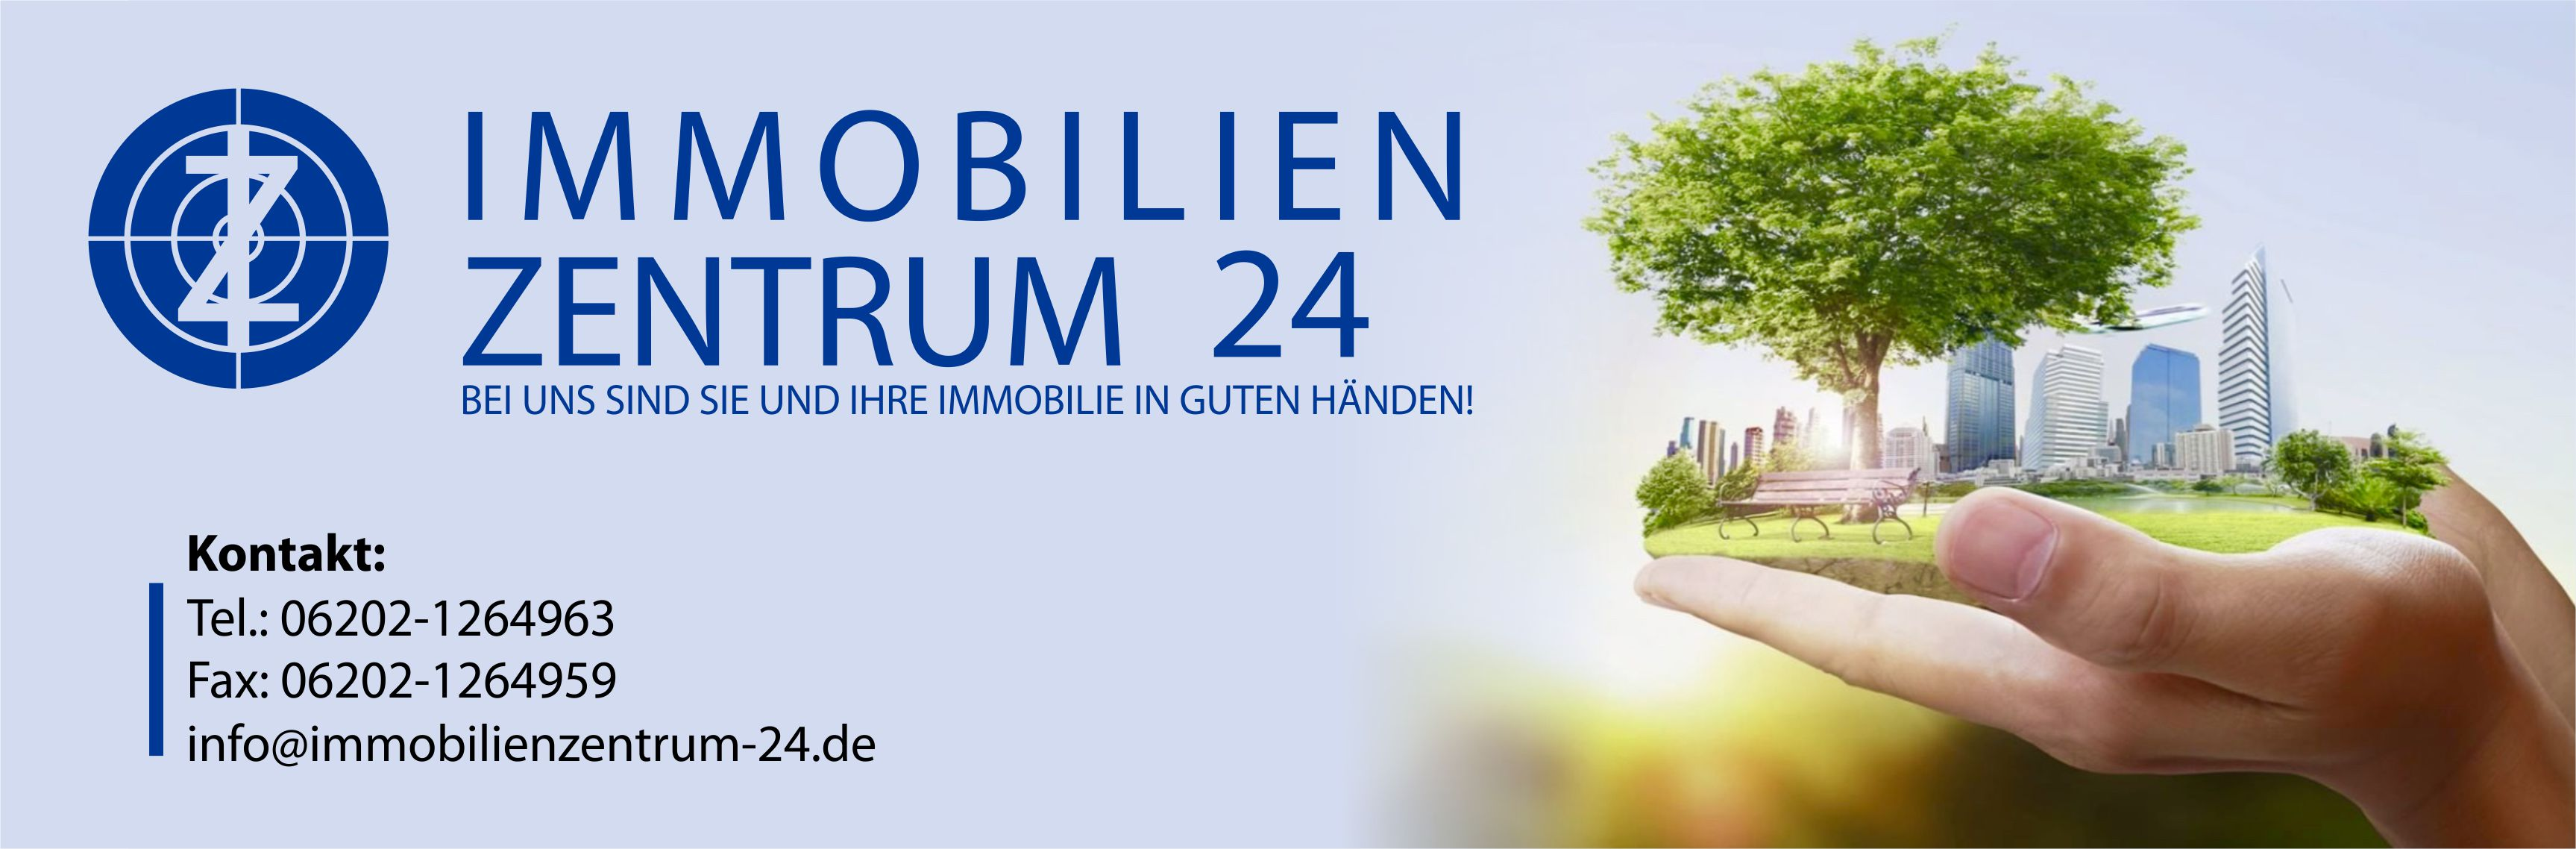 Immobilienzentrum-24 Logo